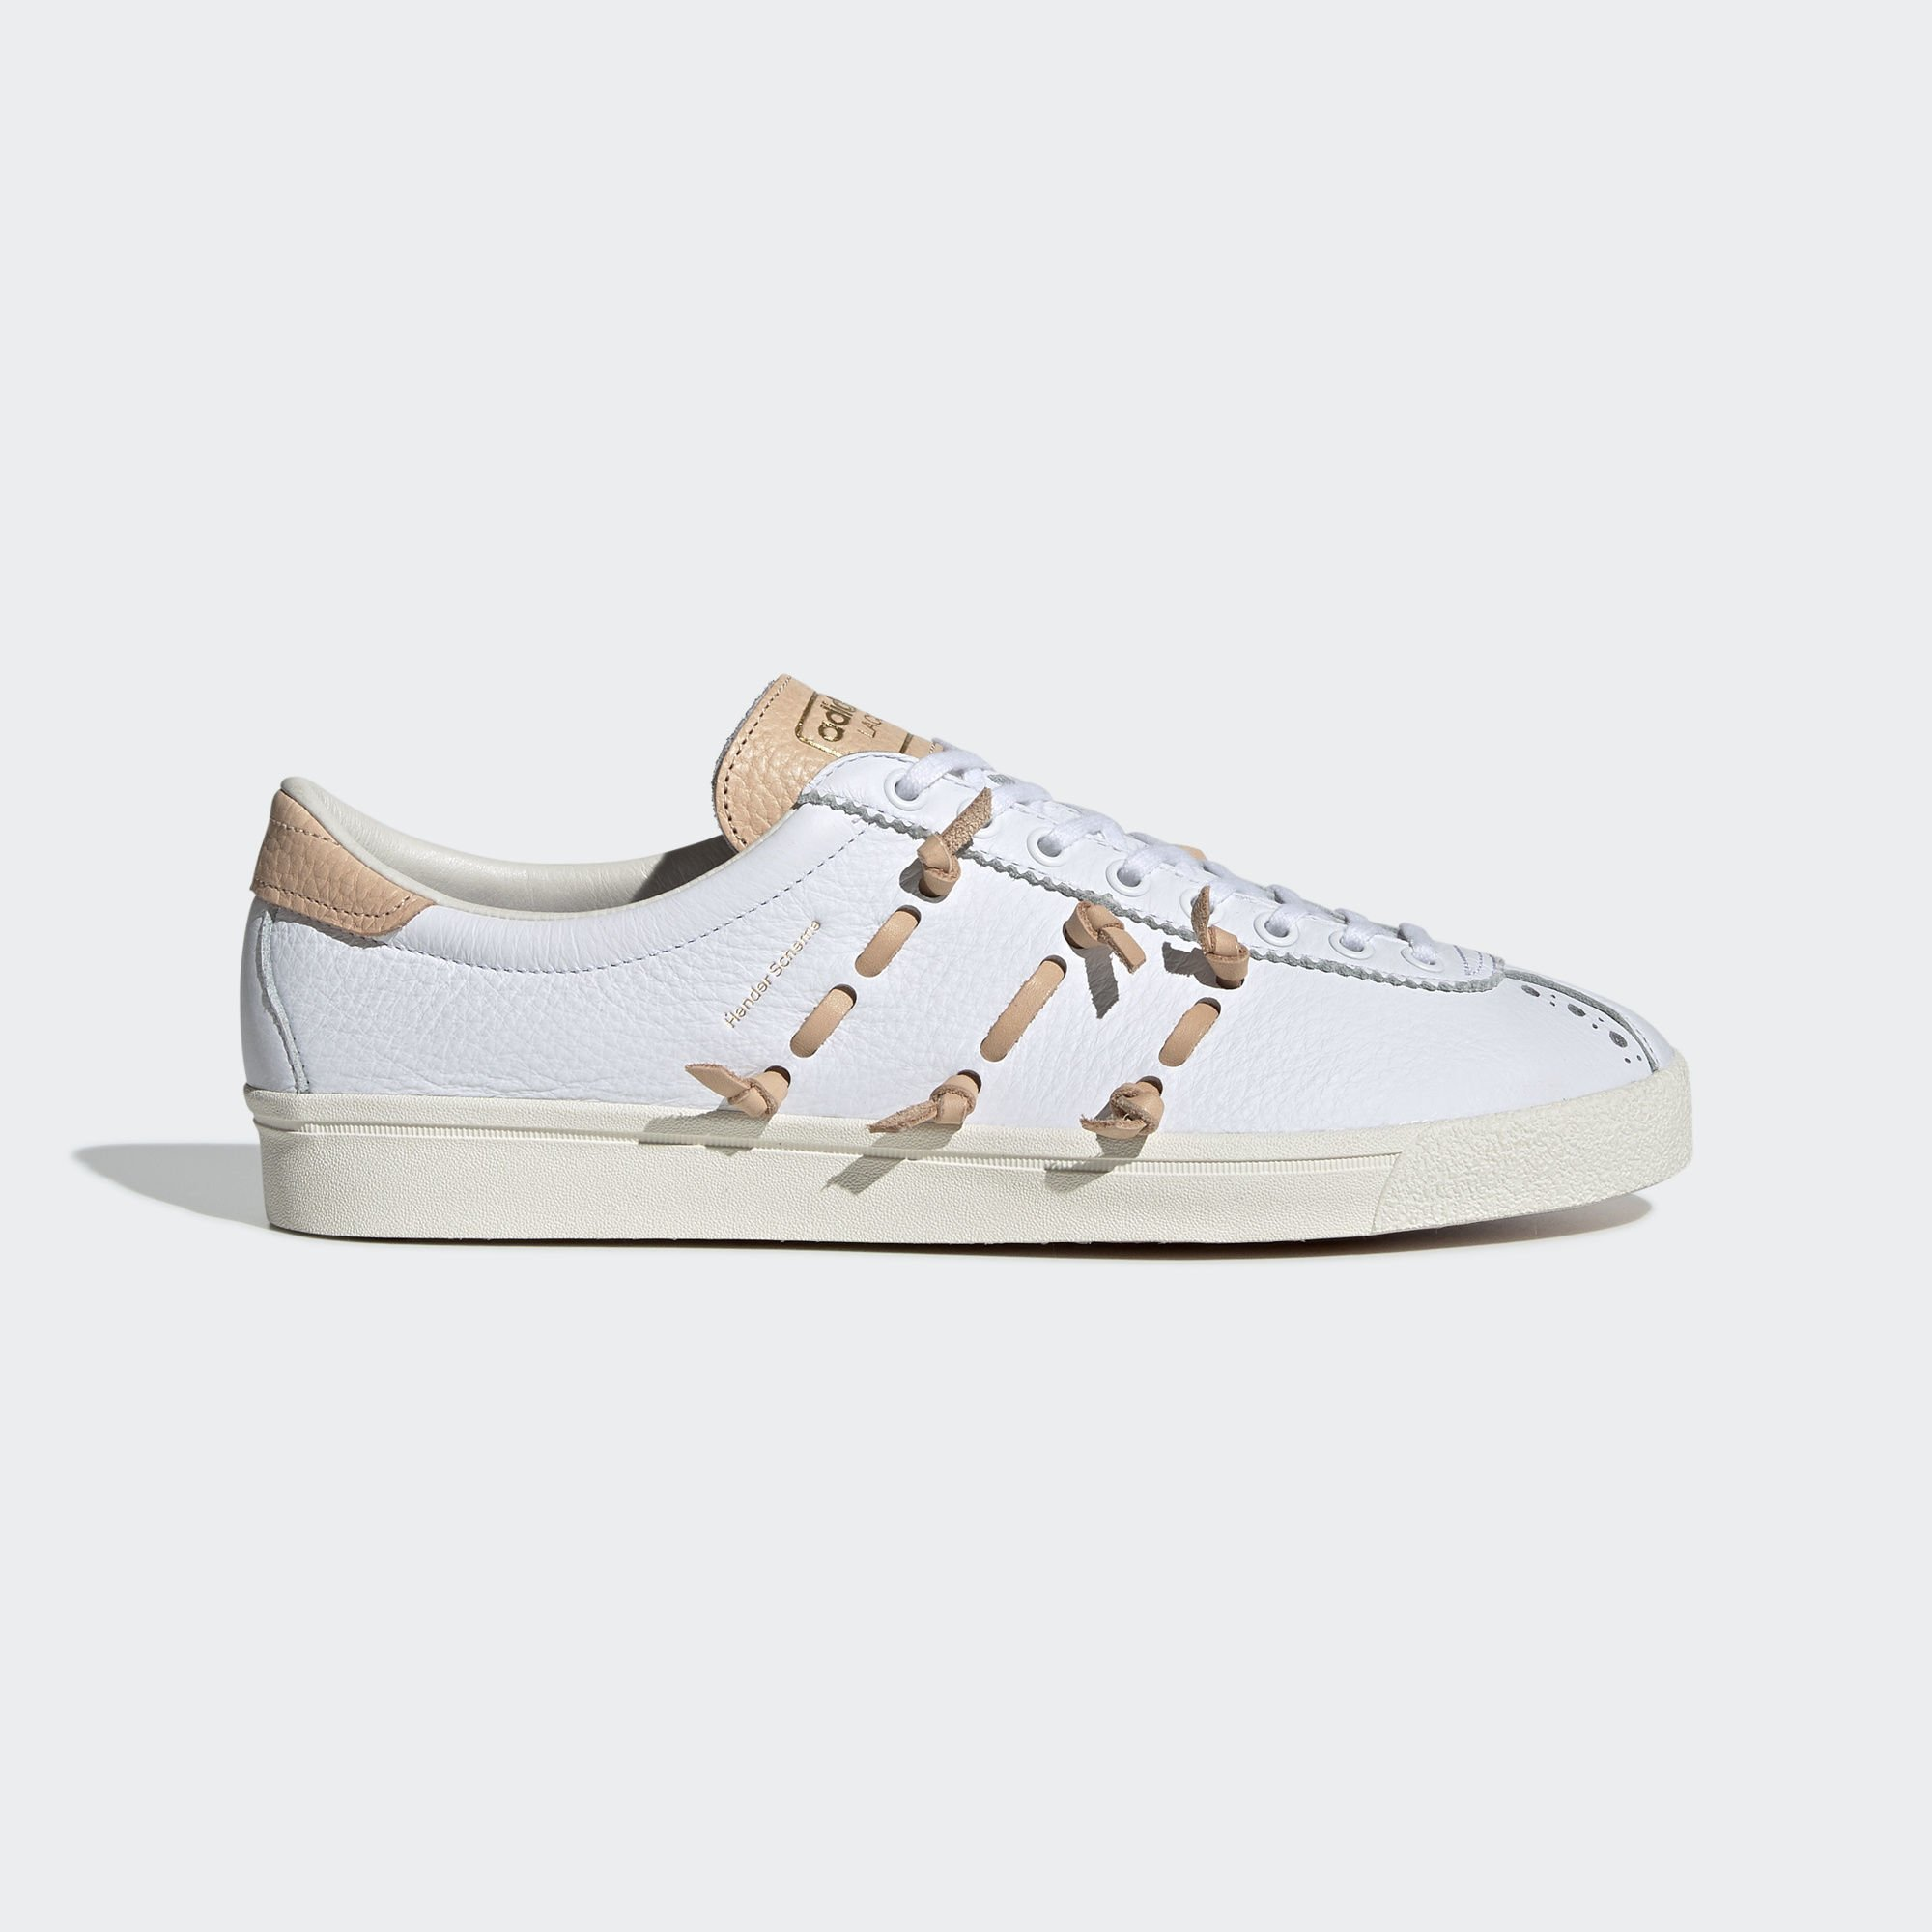 Adidas HS Lacombe Ftwr White / Supplier Colour / Off White (EE6015)